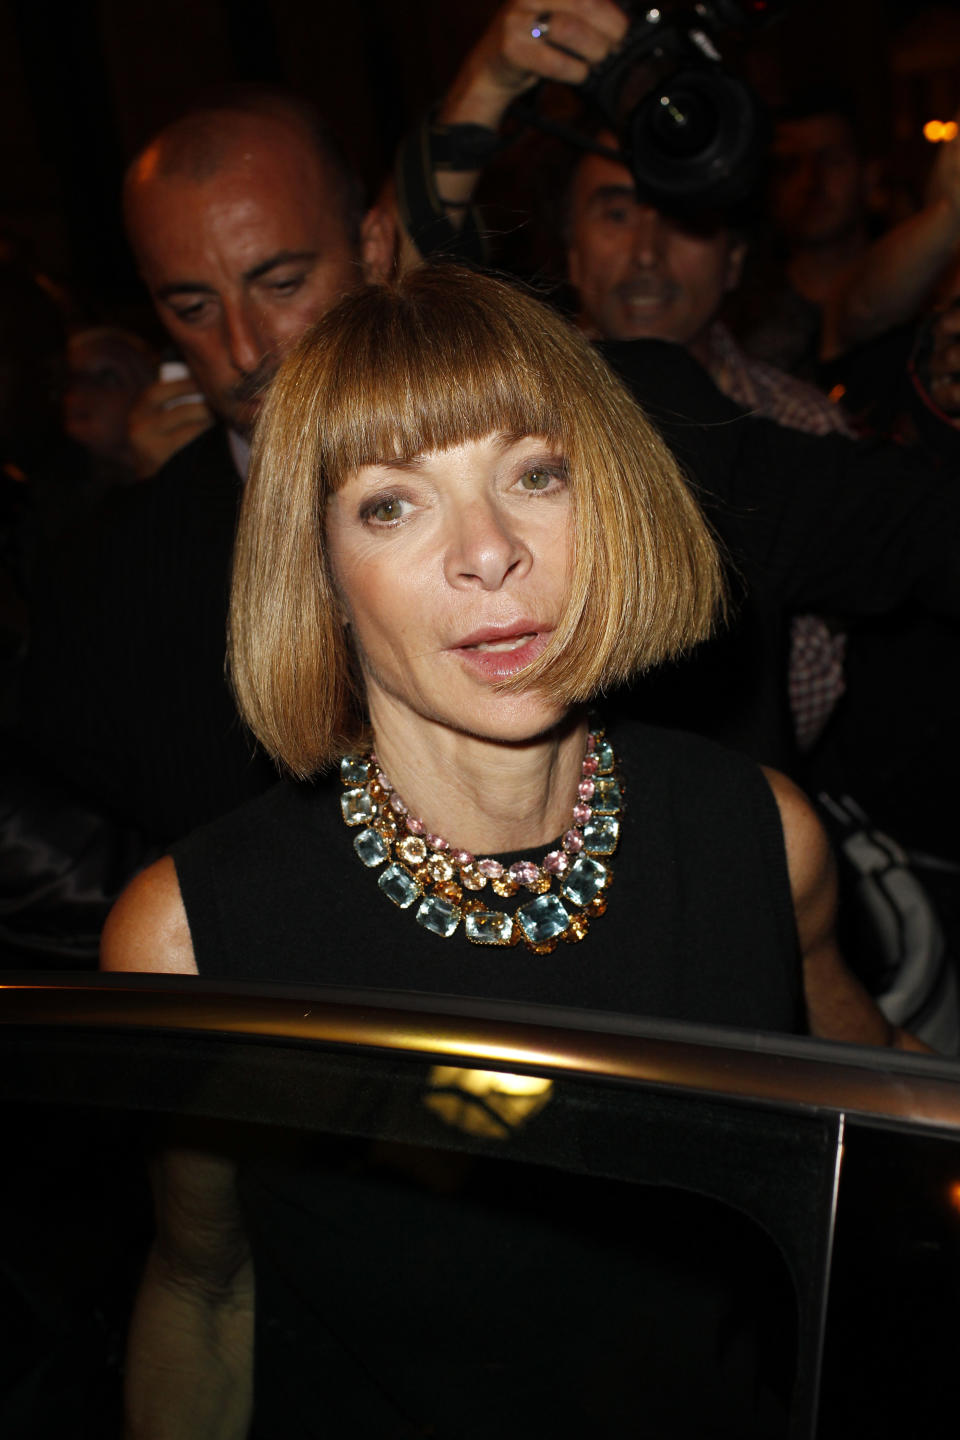 Anna Wintour, editor in chief of American Vogue, arrives at the rap singer Kanye West's spring-summer 2012 ready-to-wear collection presented Saturday, Oct.1, 2011 in Paris. (AP Photo/Thibault Camus)